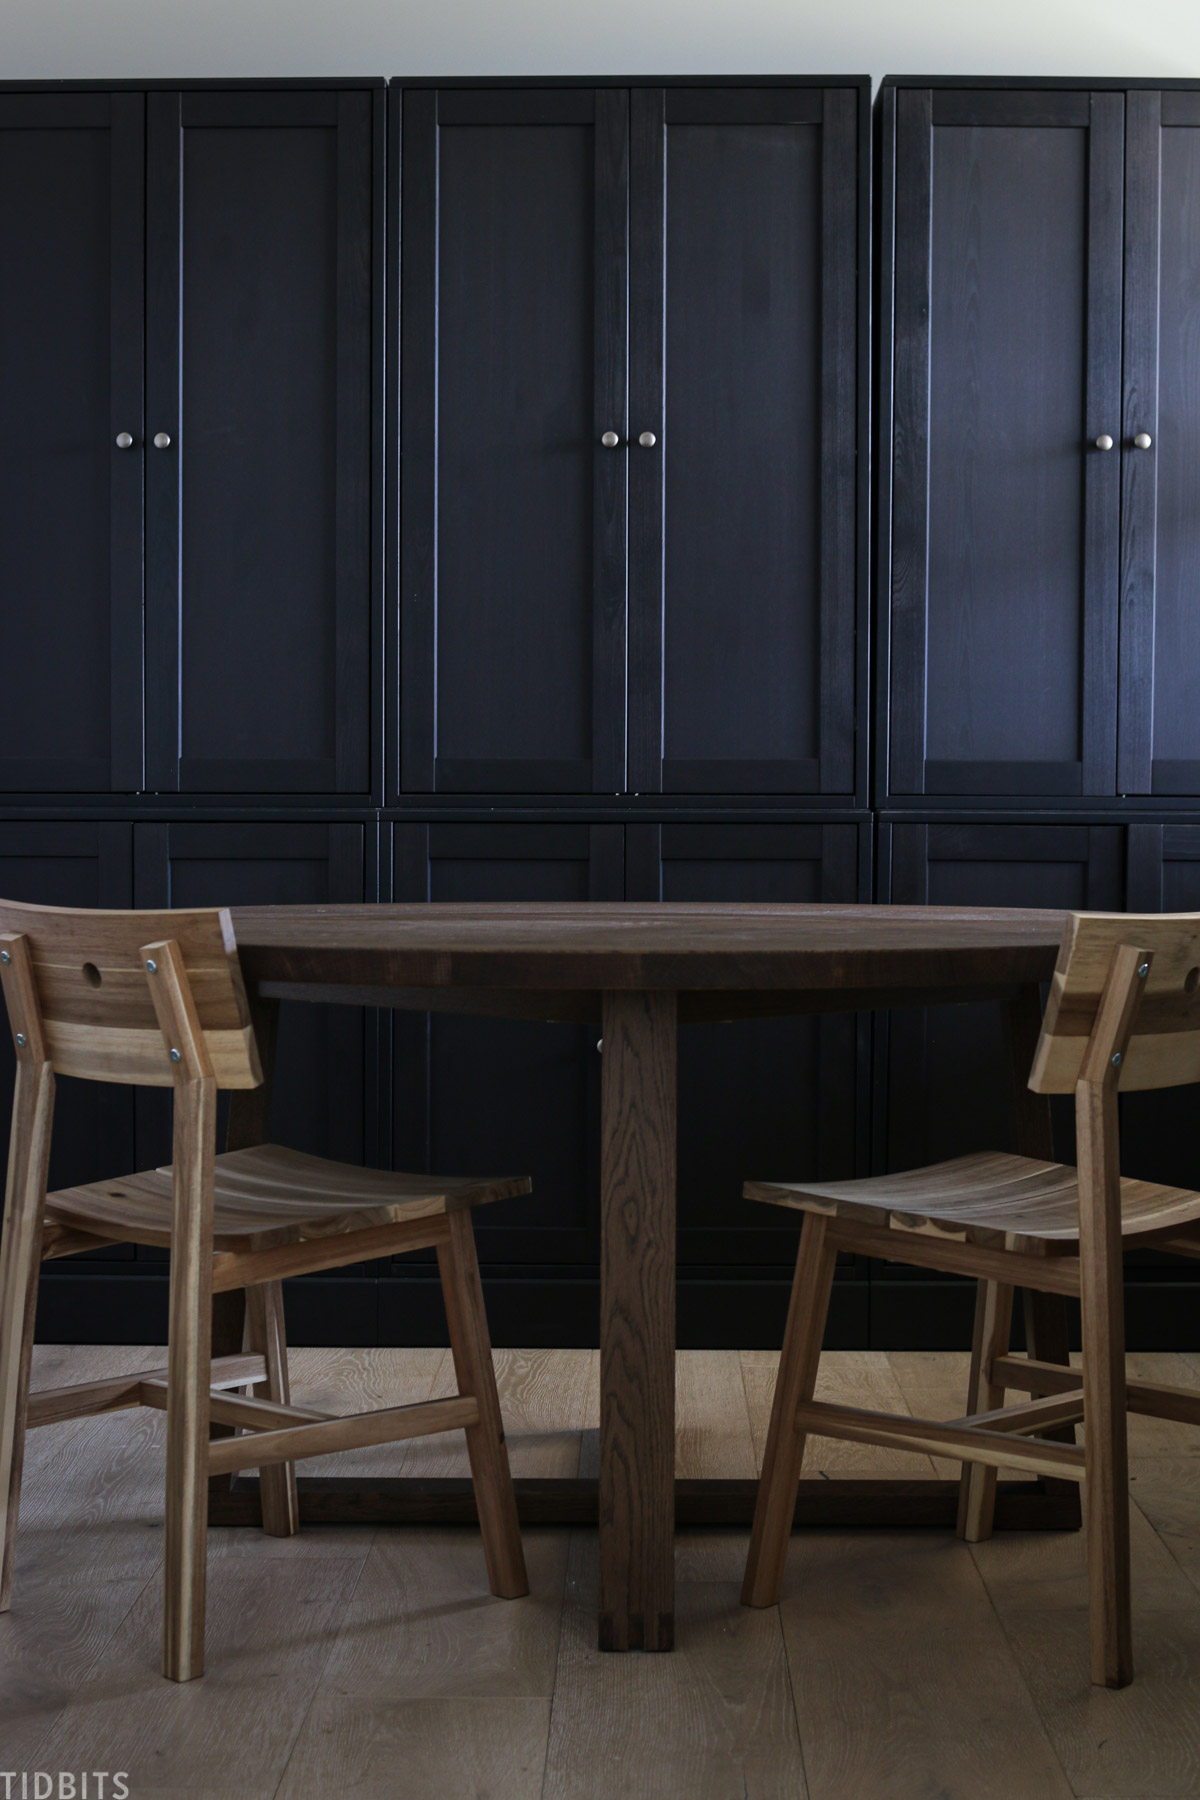 round table and two chairs in front of black Havsta cabinets made by IKEA